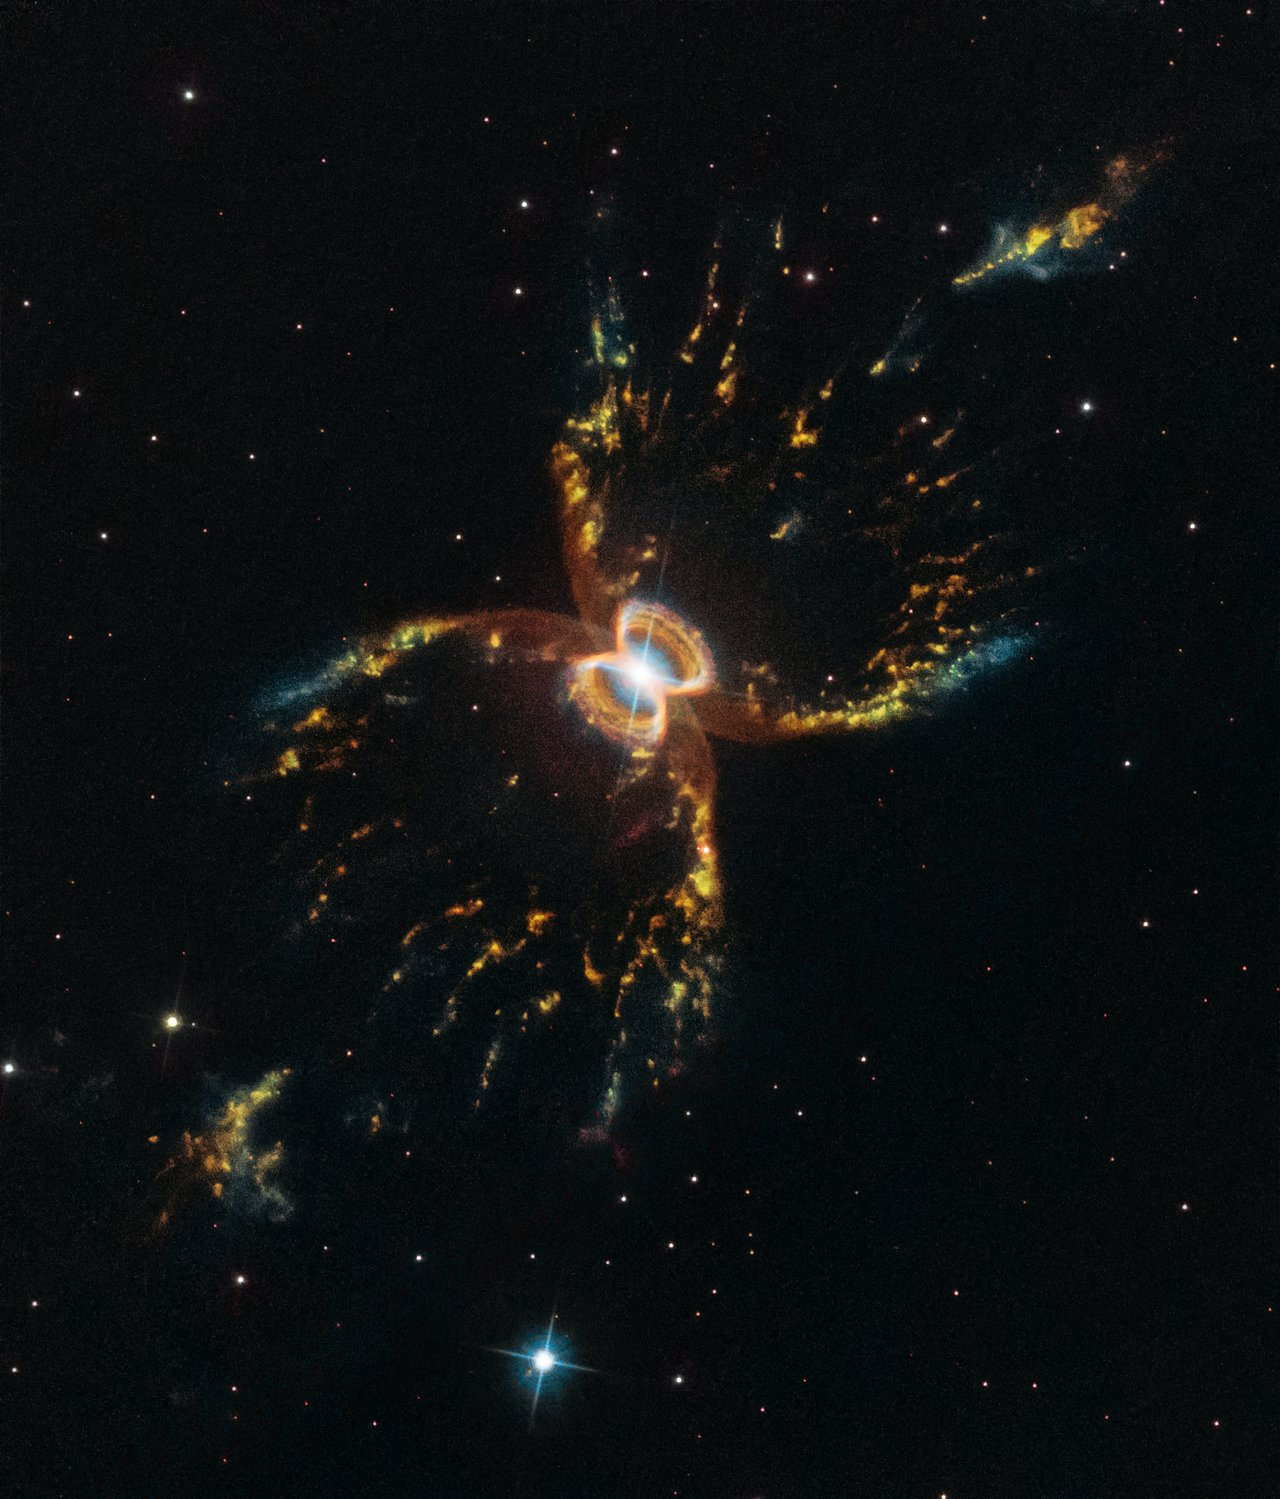 Unrivaled View of the Southern Crab Nebula